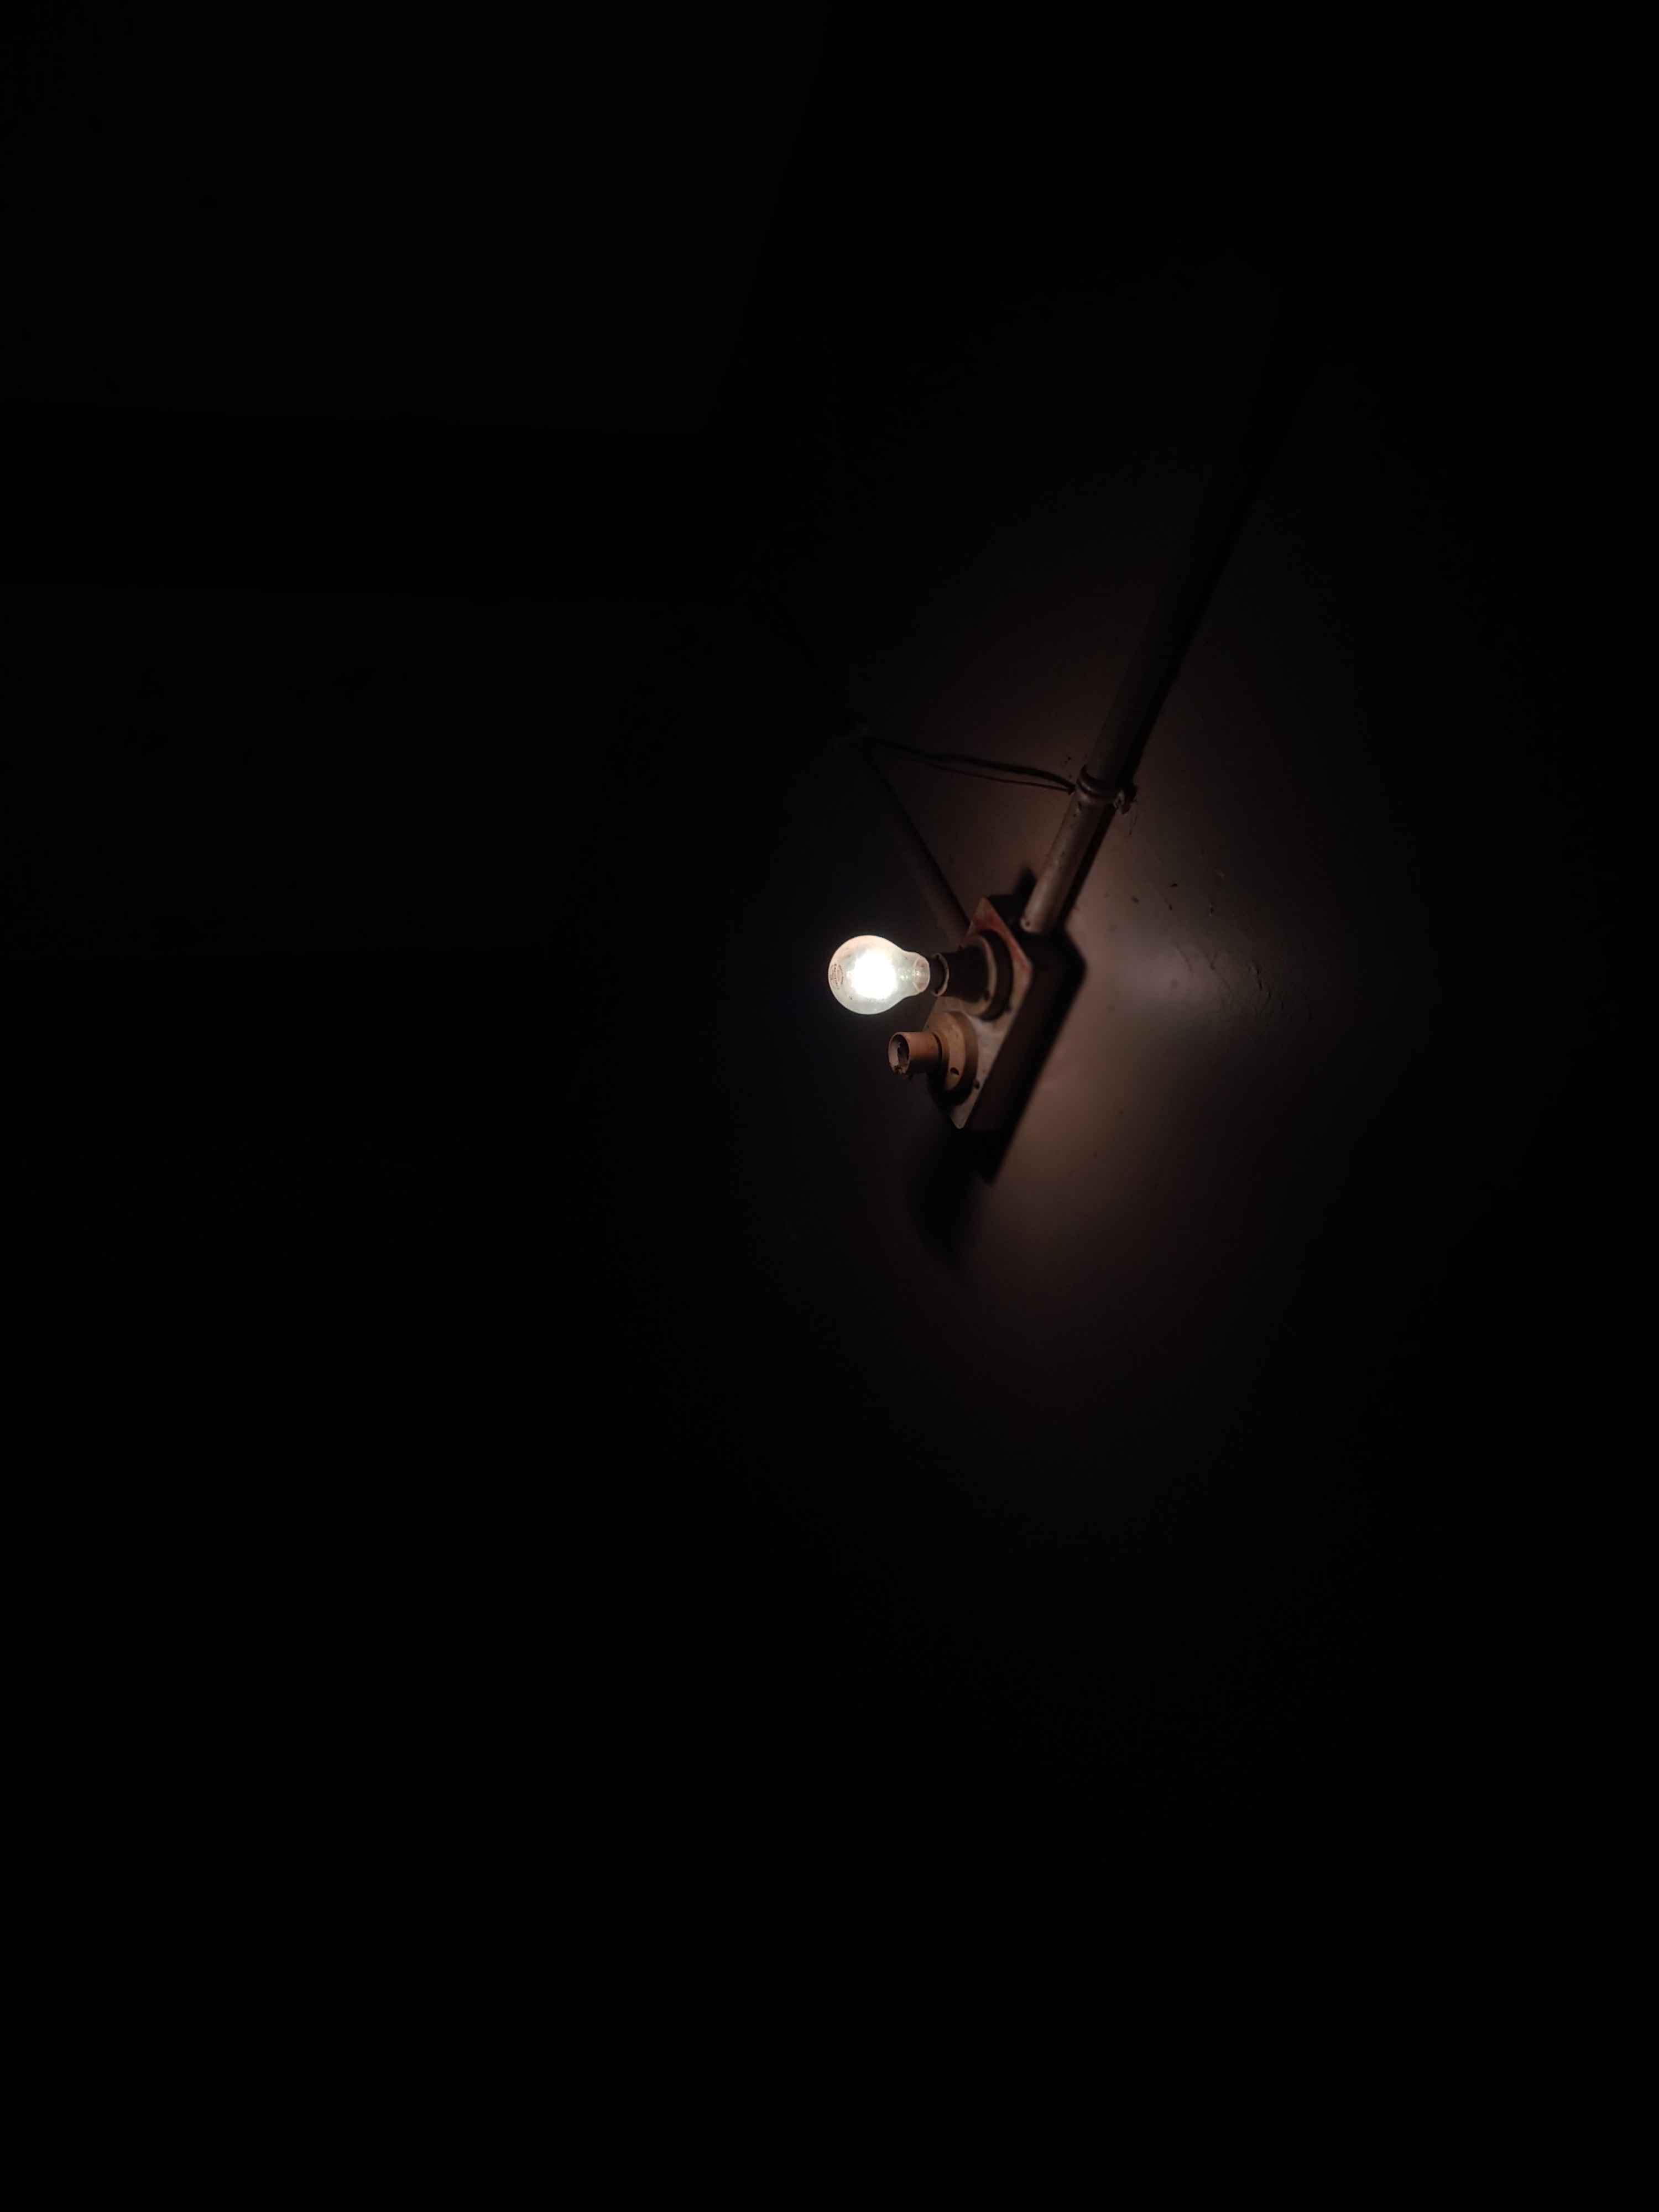 148897 Screensavers and Wallpapers Room for phone. Download Dark, Light Bulb, Shine, Light, Glow, Room pictures for free